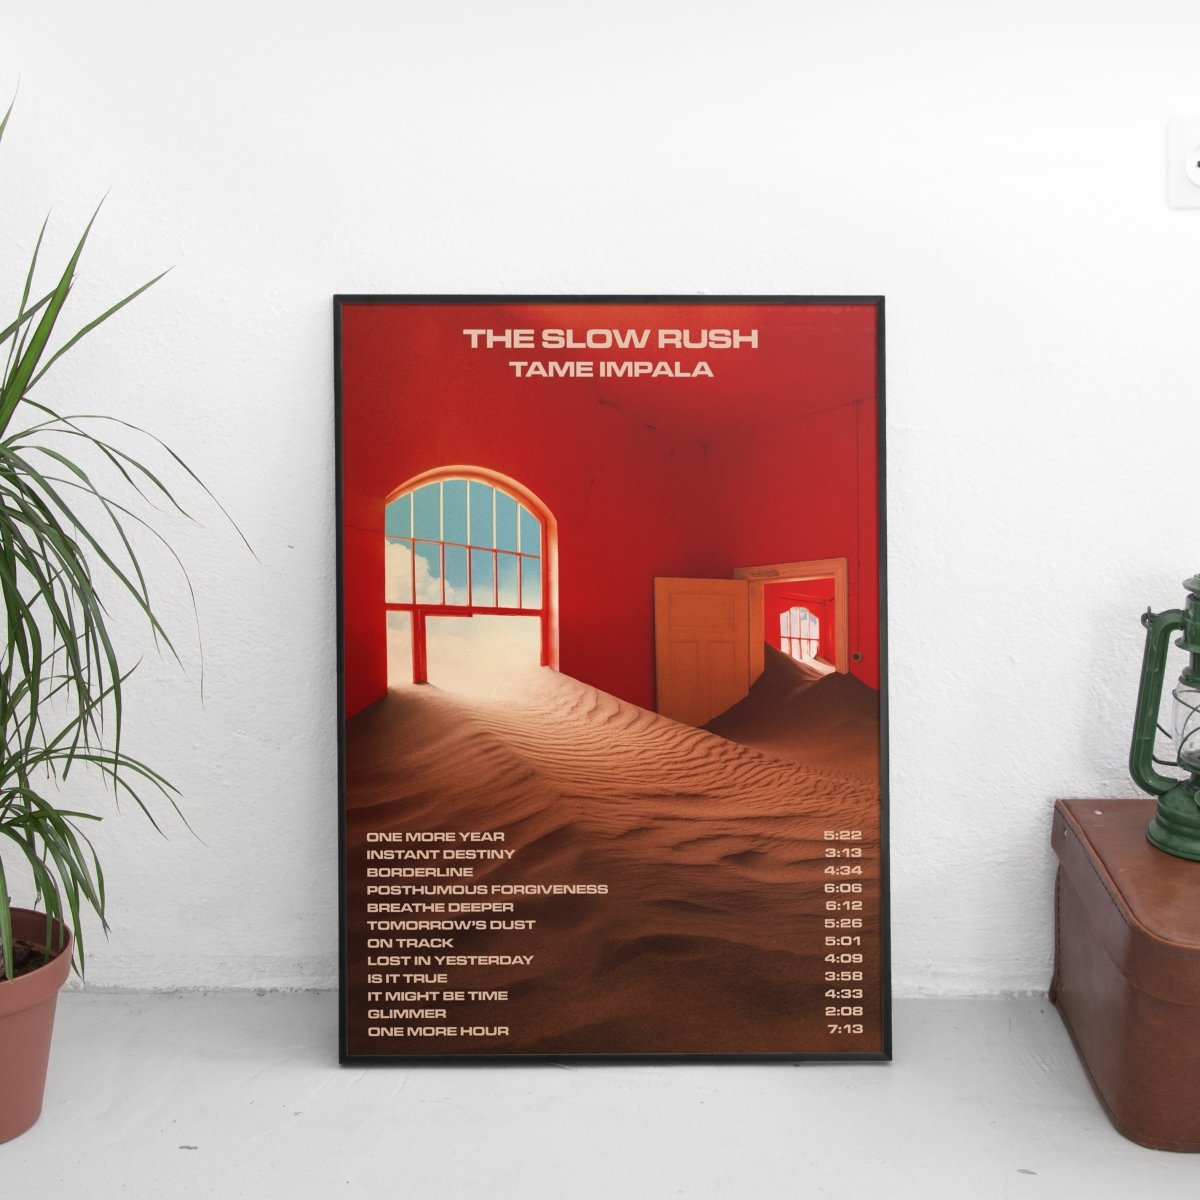 Tame Impala - The Slow Rush Tracklist Poster